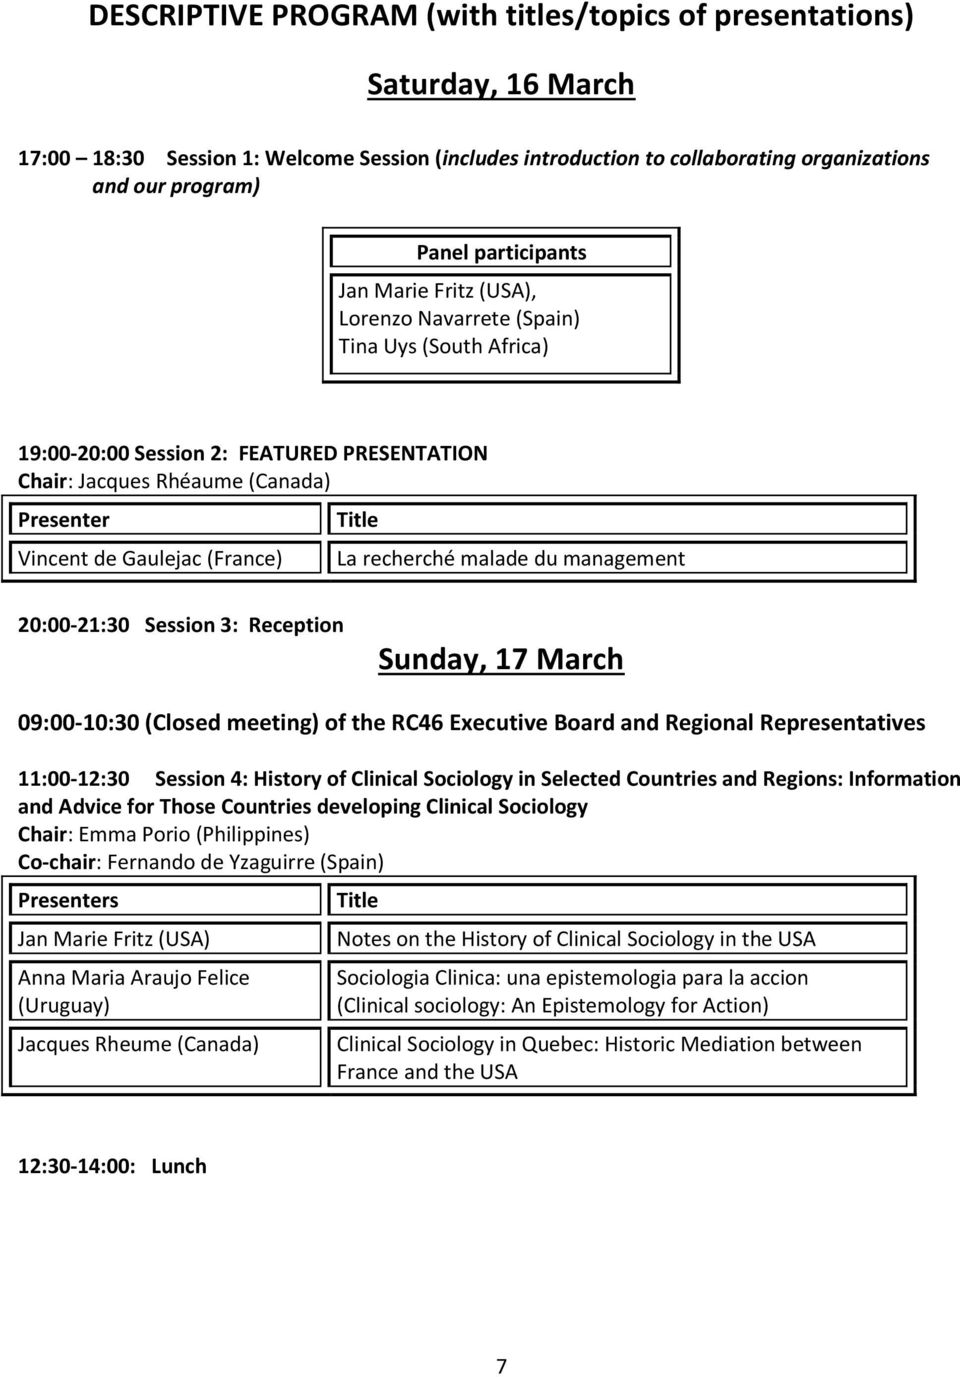 management 20:00-21:30 Session 3: Reception Sunday, 17 March 09:00-10:30 (Closed meeting) of the RC46 Executive Board and Regional Representatives 11:00-12:30 Session 4: History of Clinical Sociology